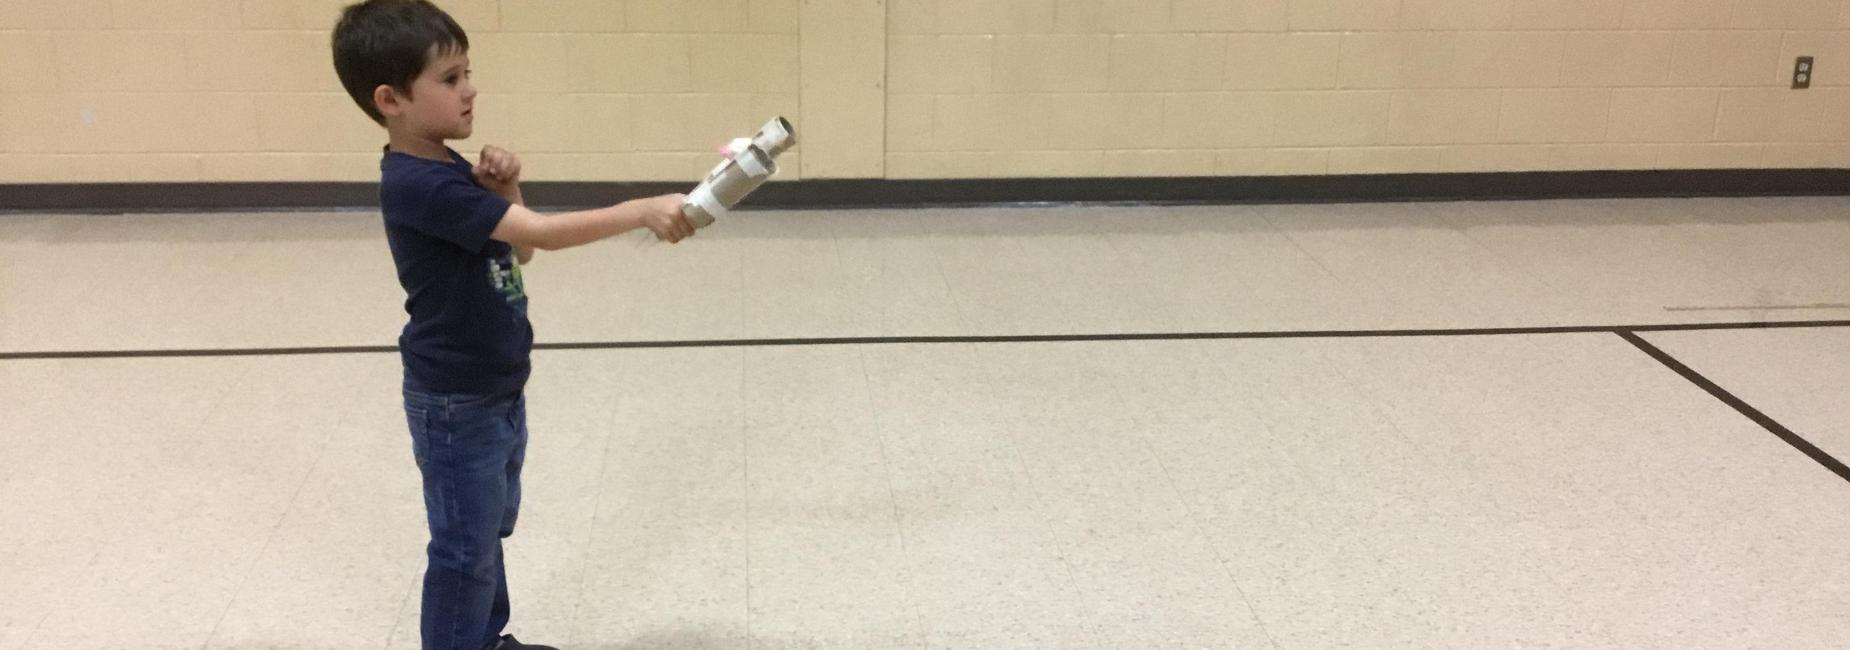 boy holding a device that launches objects in gymnasium